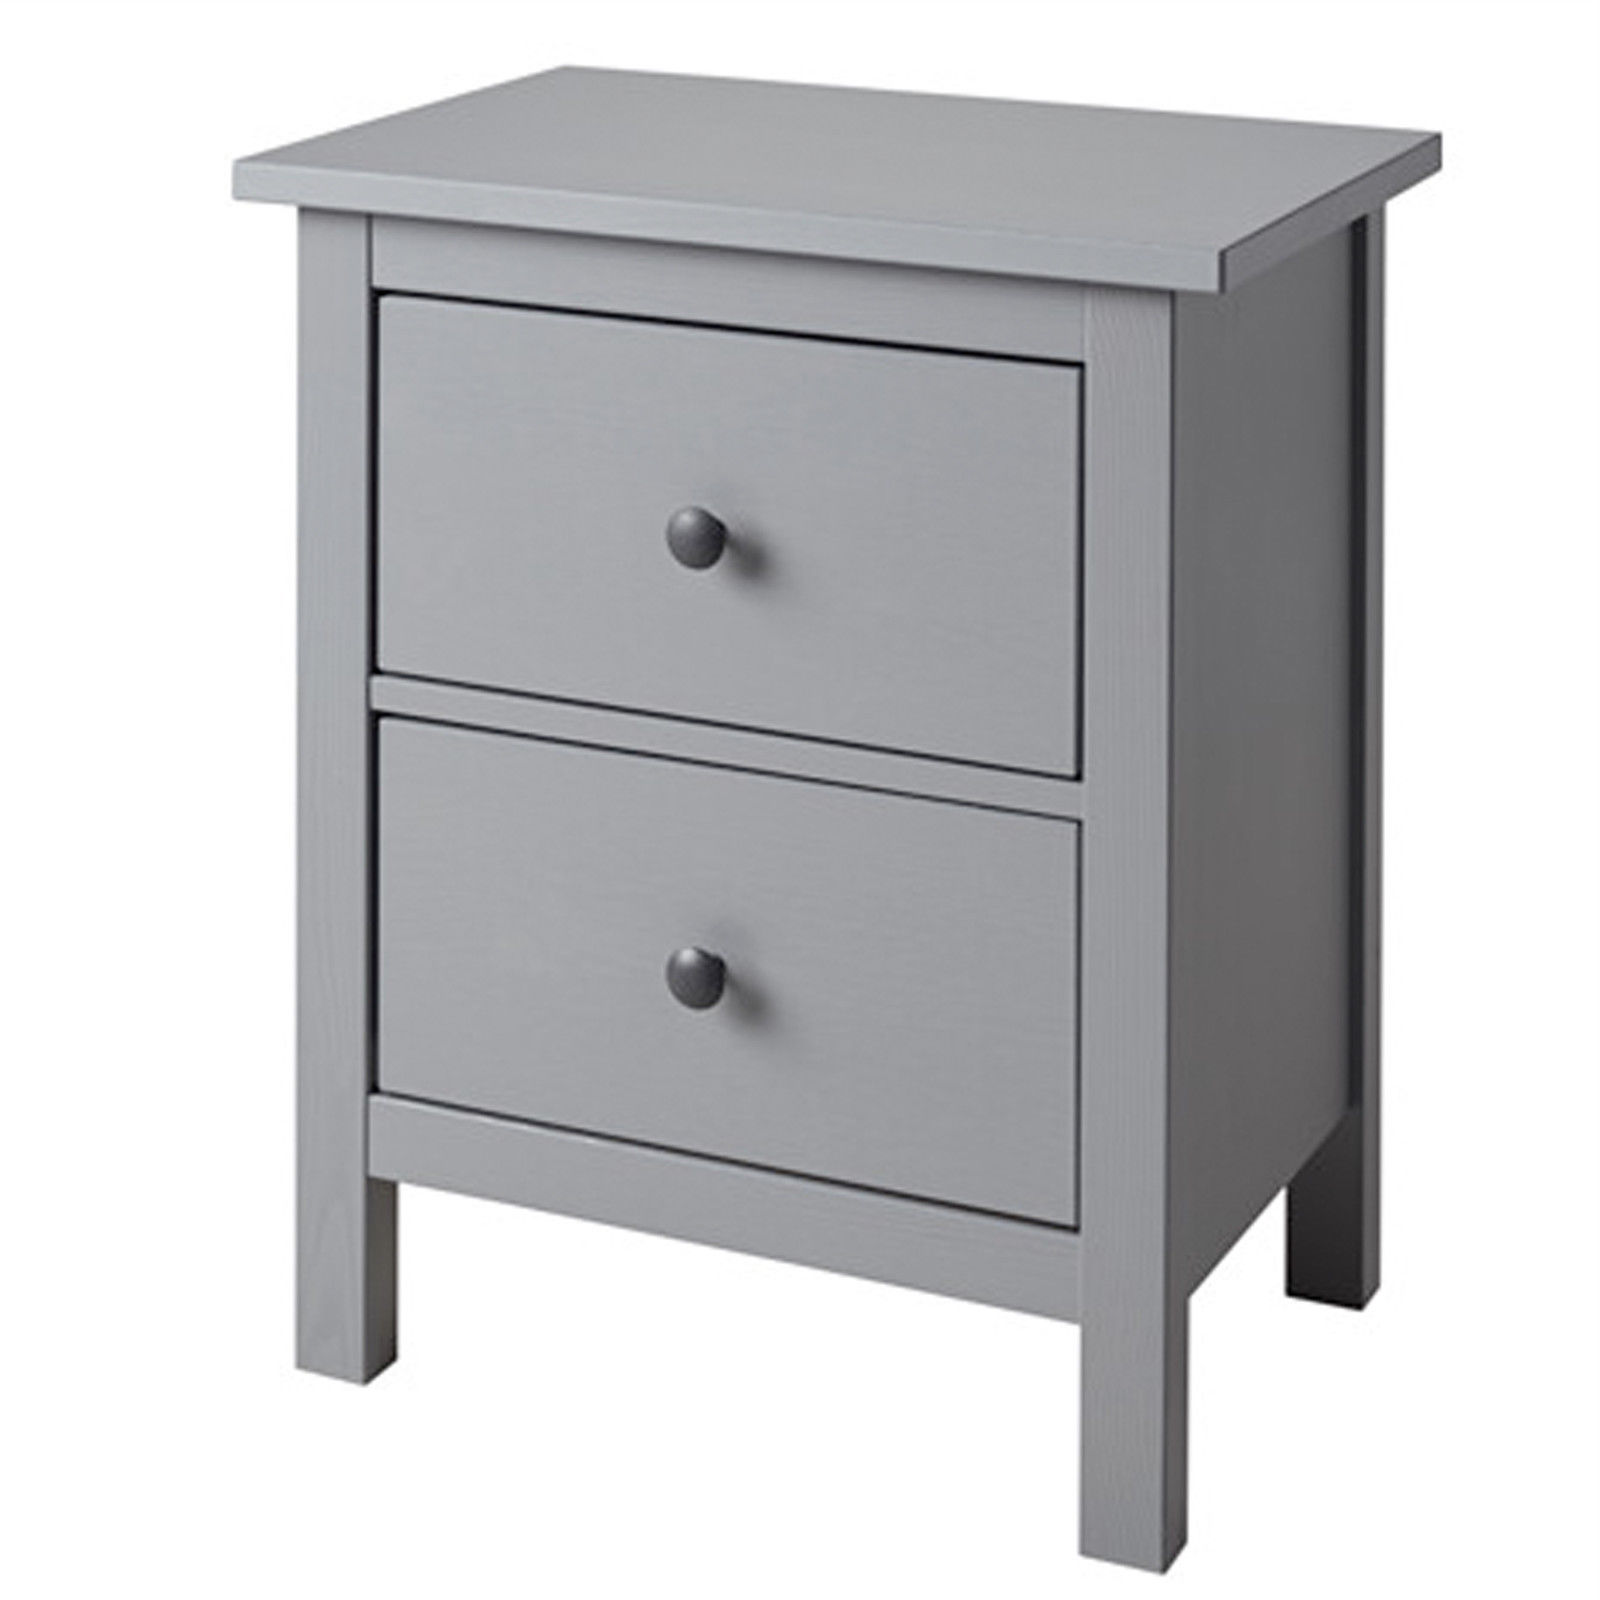 ikea hemnes kommode mit 2 schubladen grau nachtkonsole. Black Bedroom Furniture Sets. Home Design Ideas